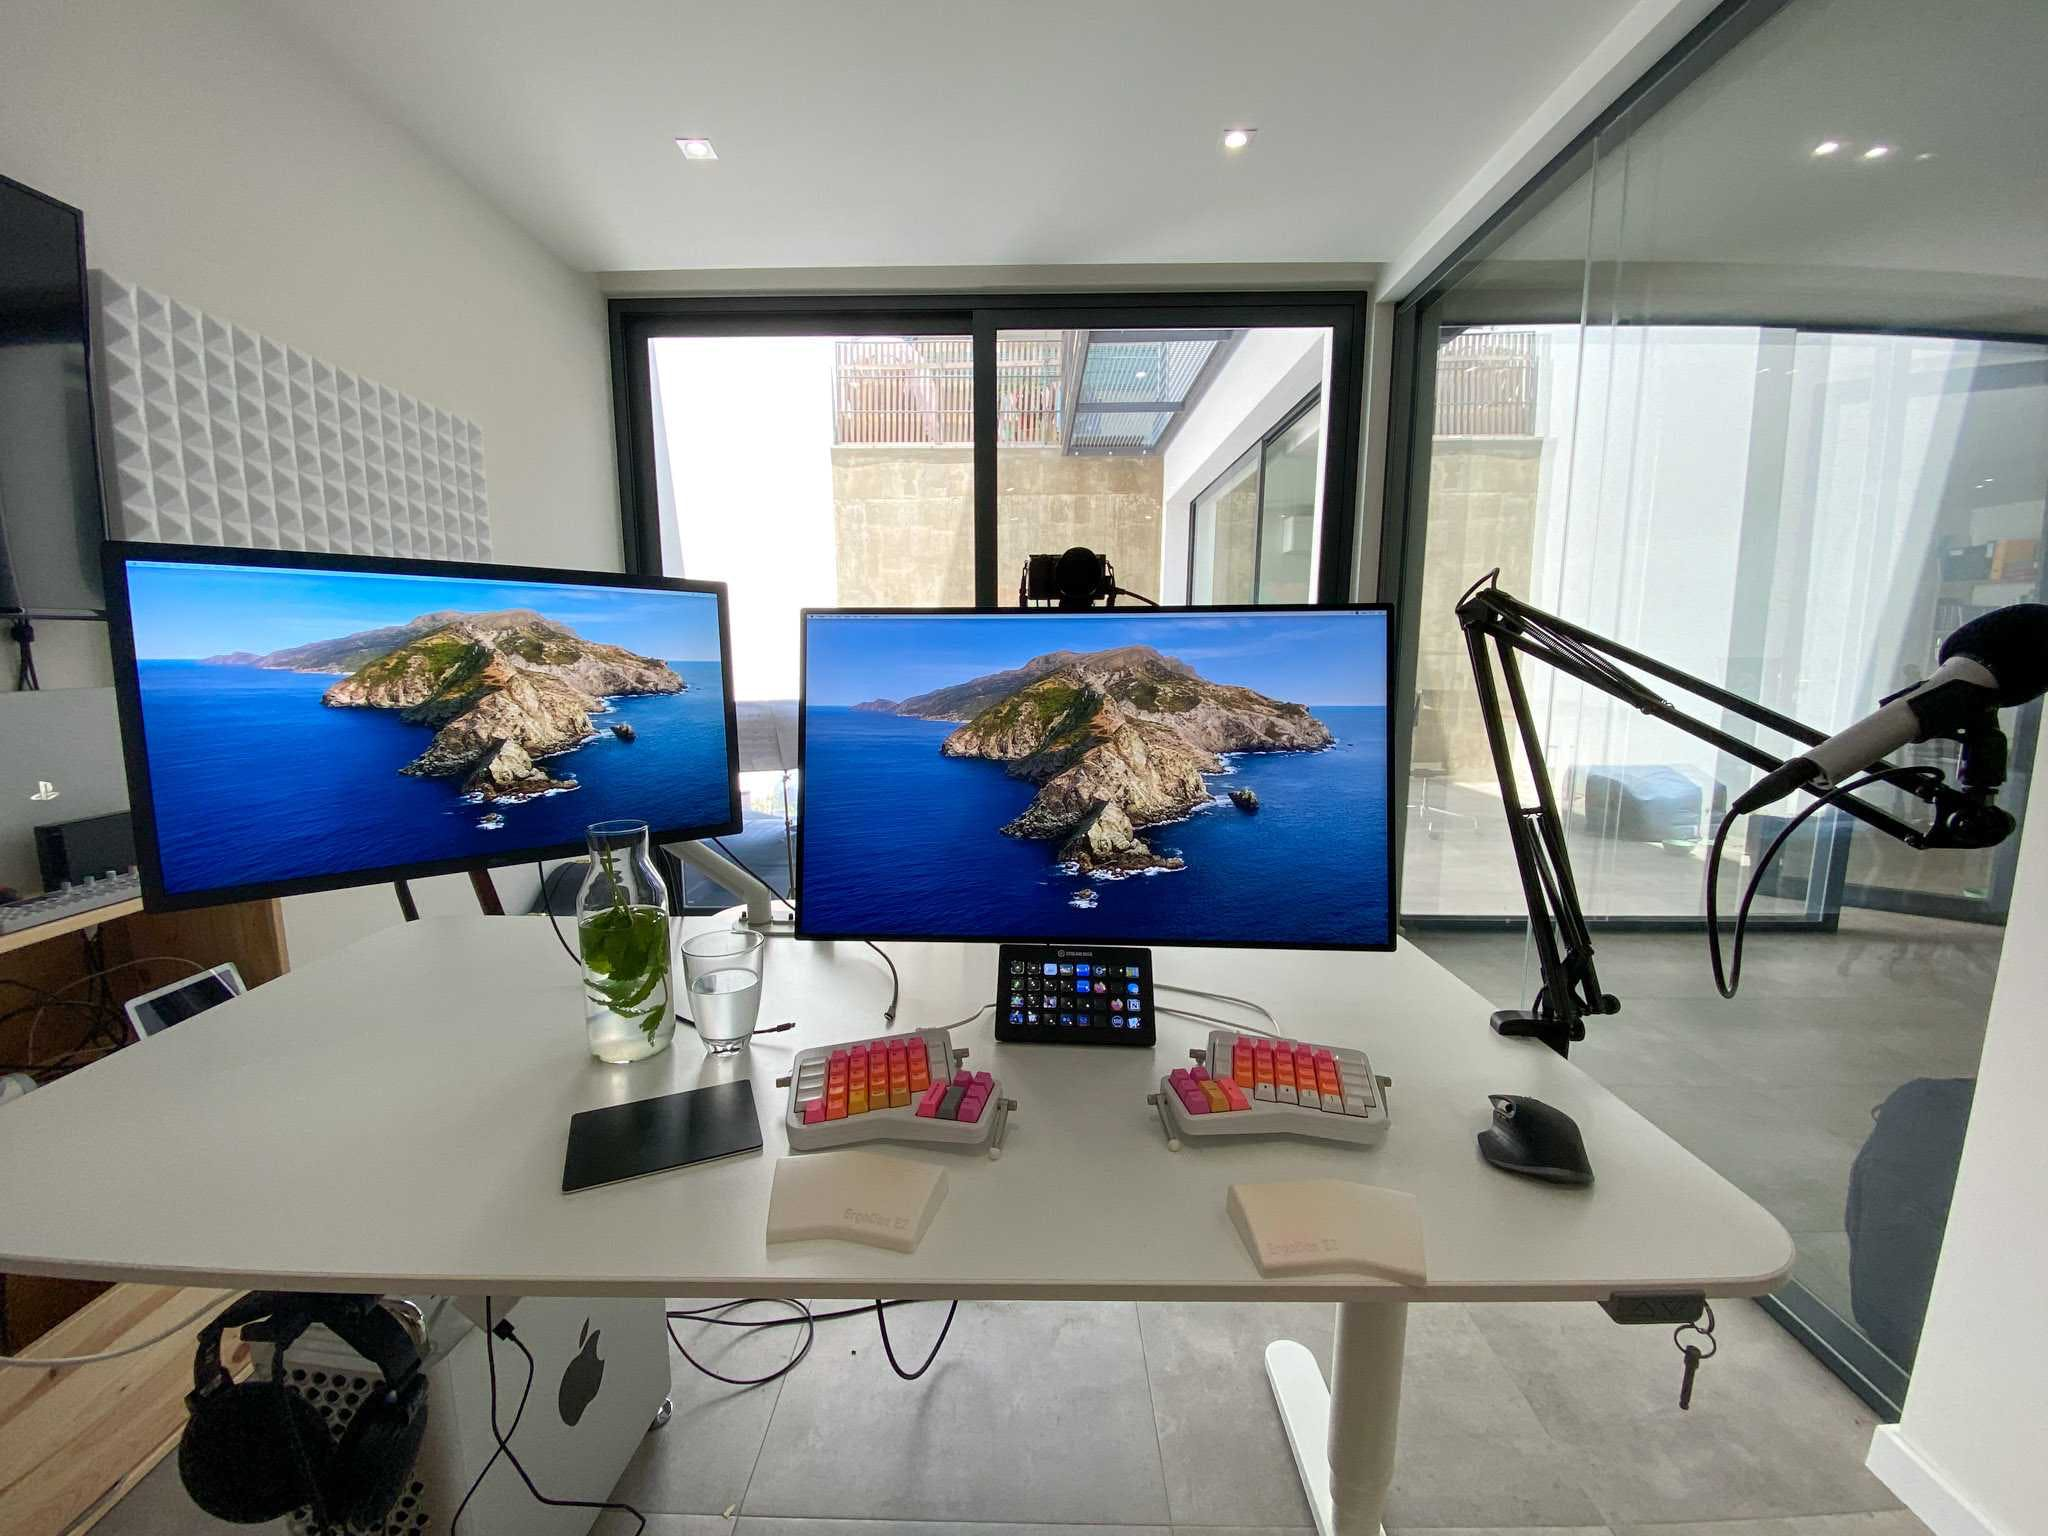 desk with keyboard, mouse, two monitors and microphone